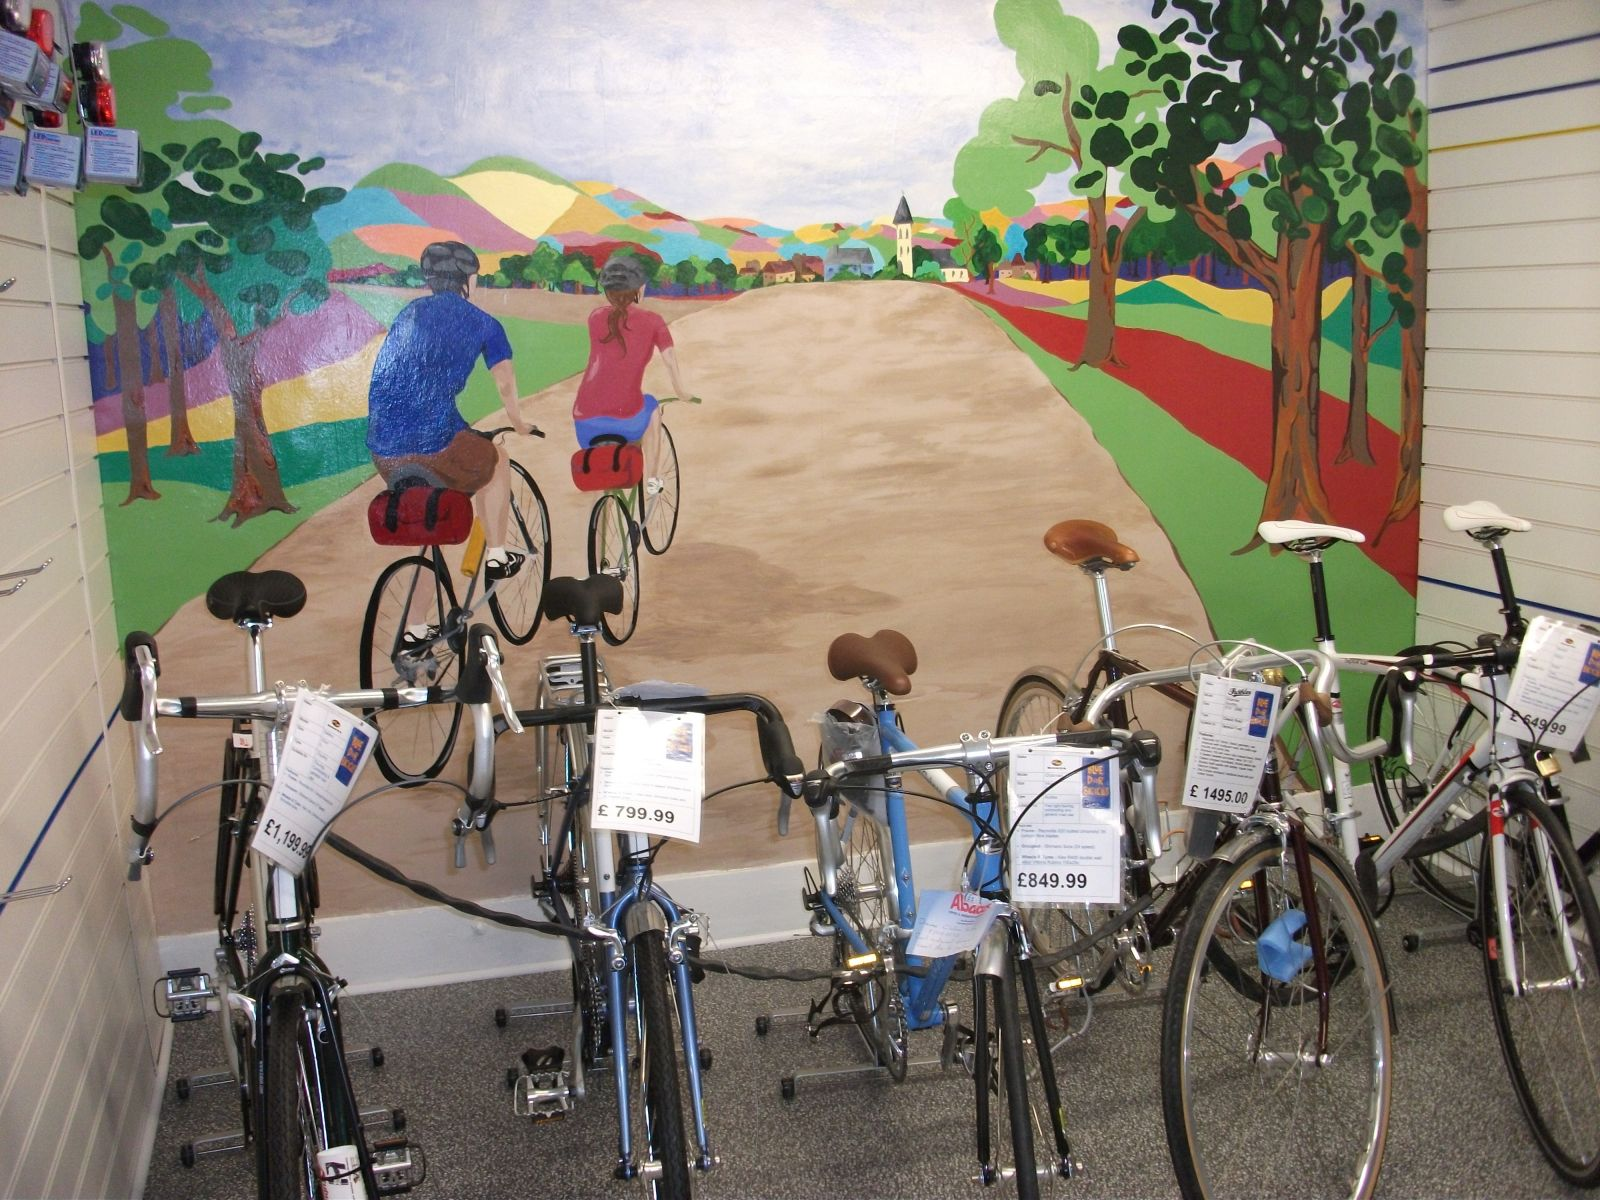 Mural And bikes